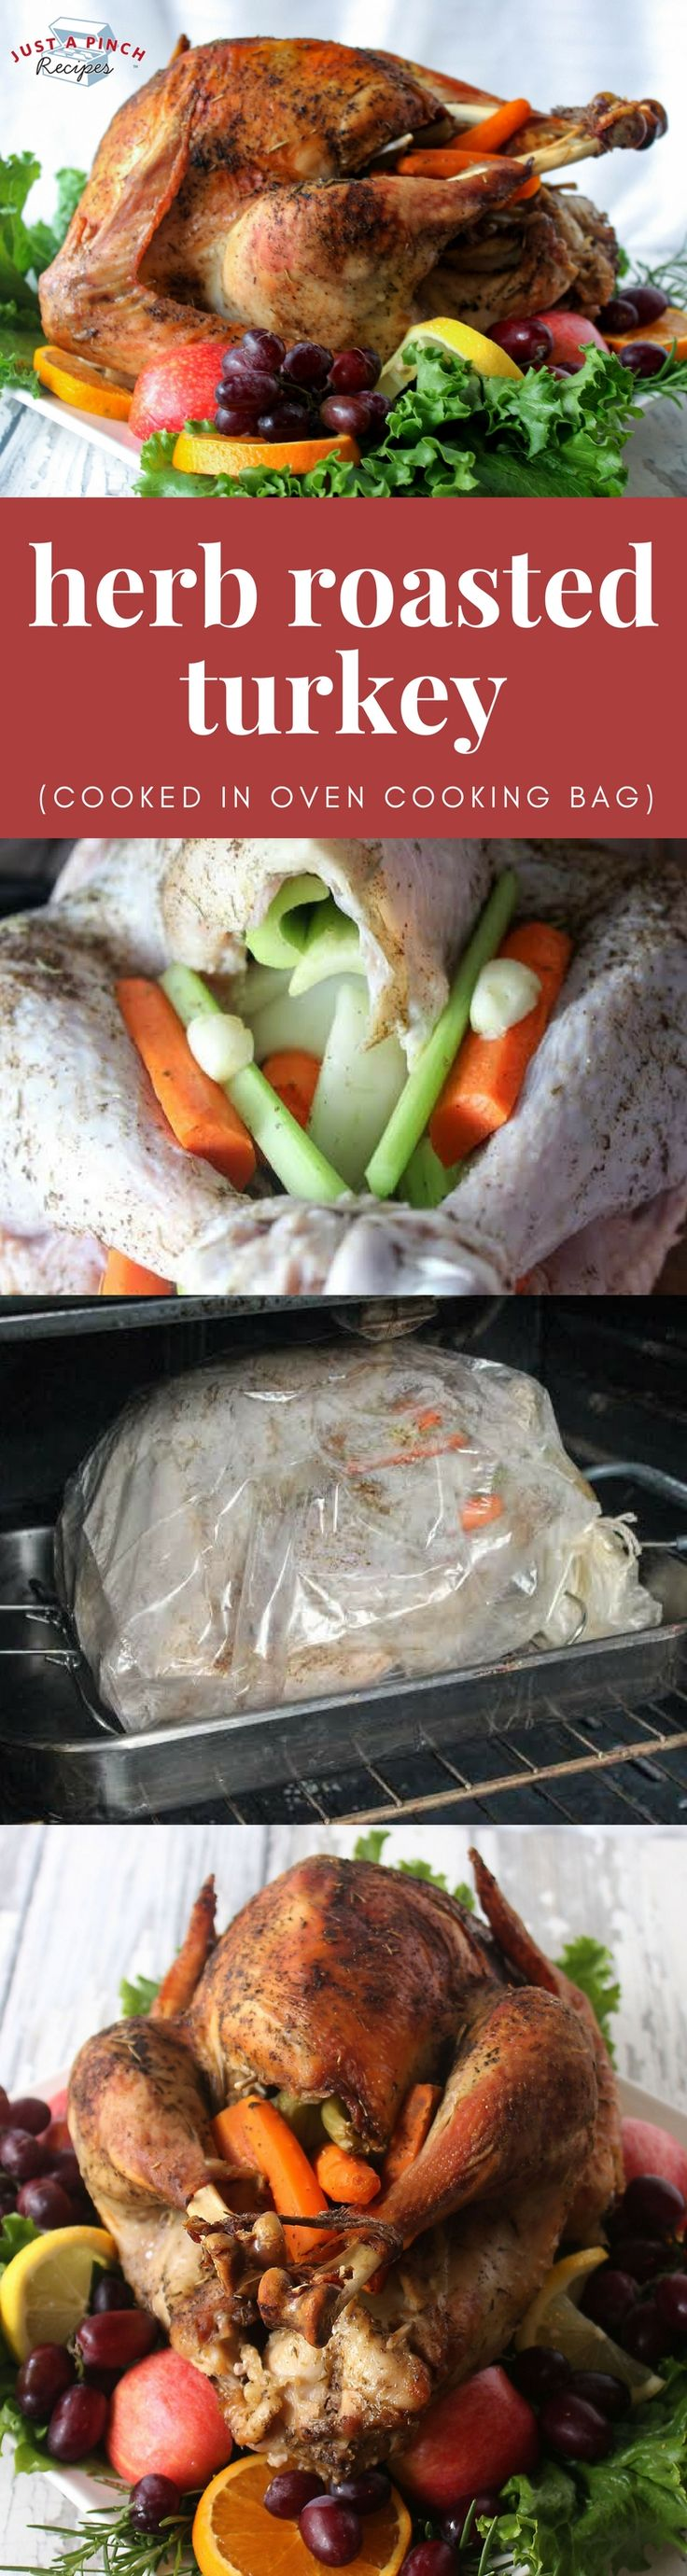 Easy Thanksgiving turkey recipe | herb roasted turkey cooked in oven cooking bag #thanksgivingrecipes #turkeyrecipe